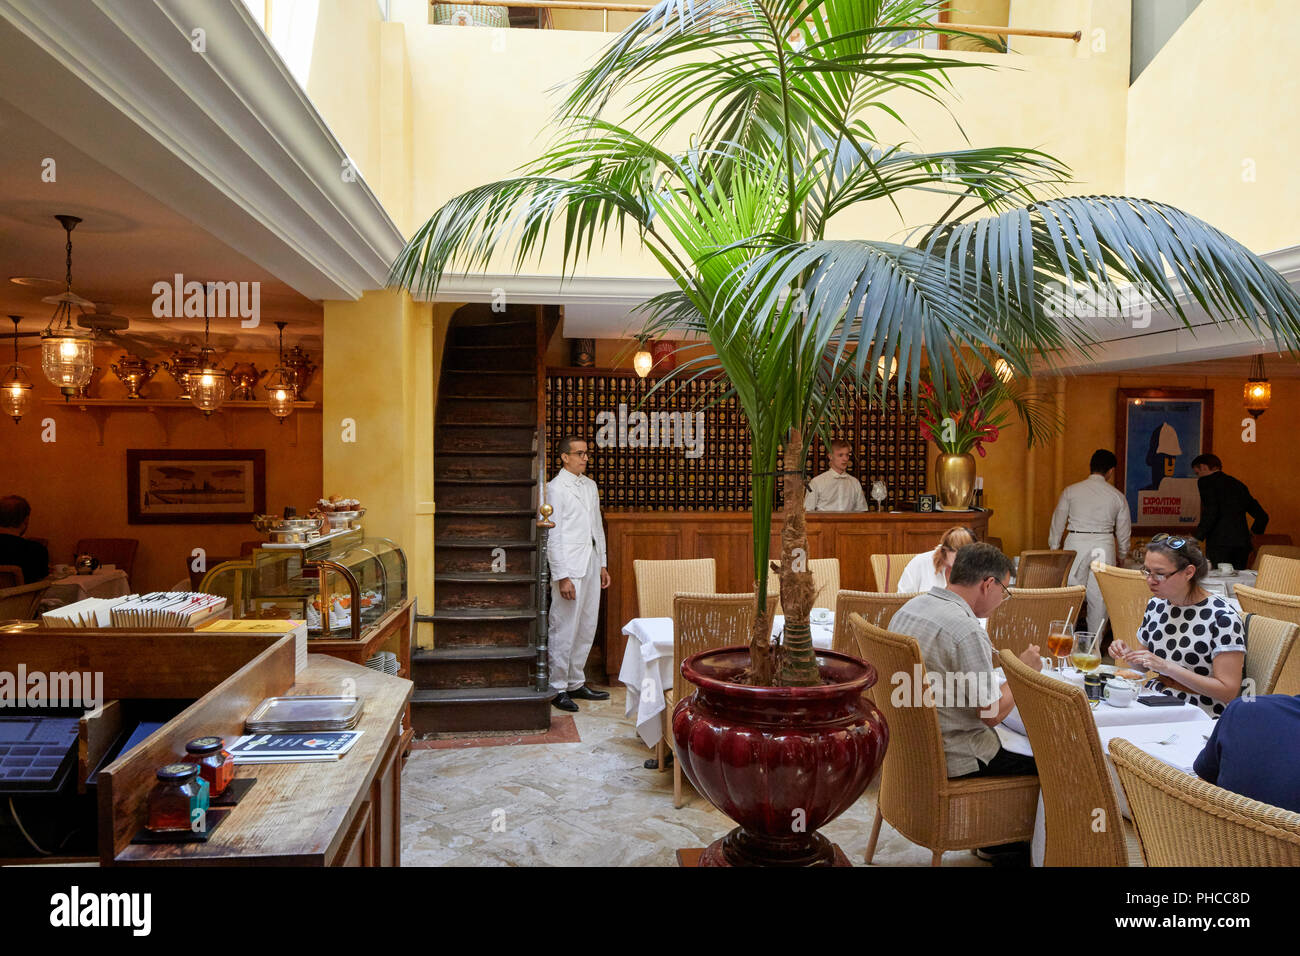 Inside of Mariage Freres restaurant on Rue du Bourg Tibourg in Le Marais in Paris - Stock Image